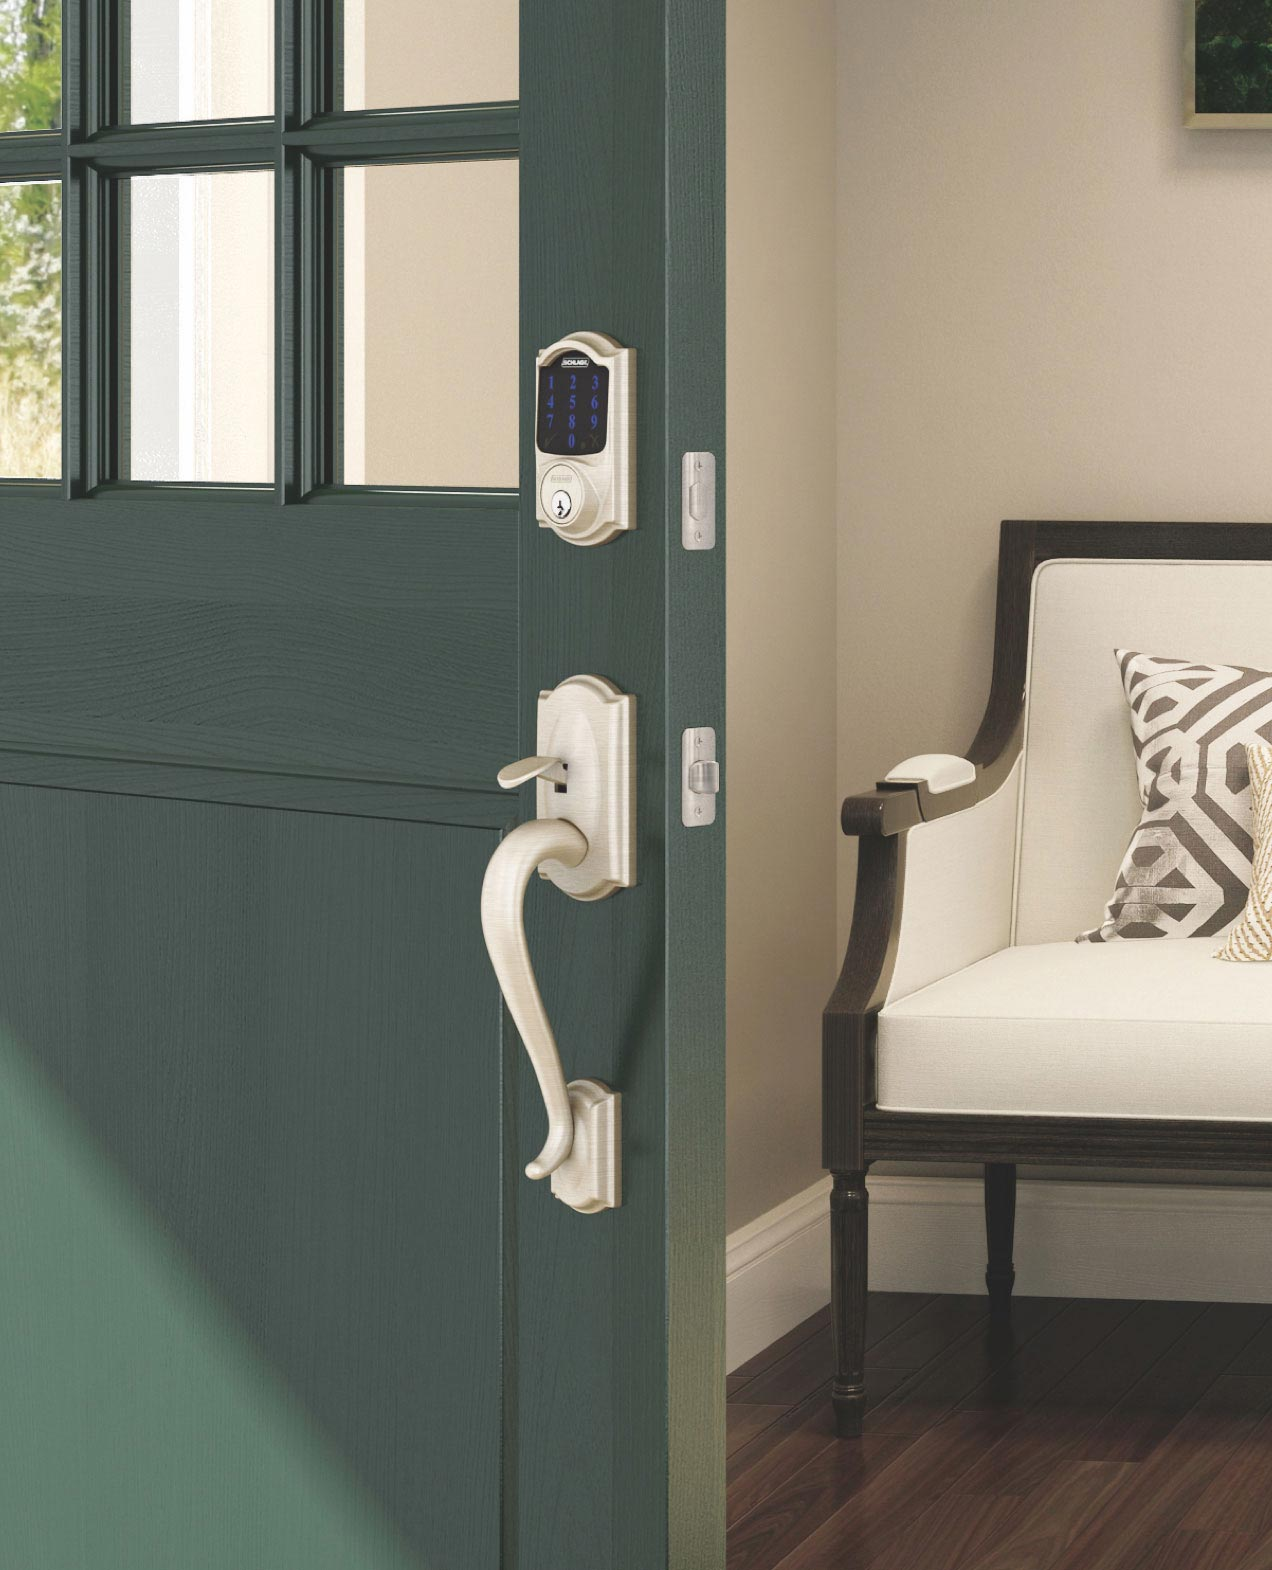 Access control for your Ring of Security.